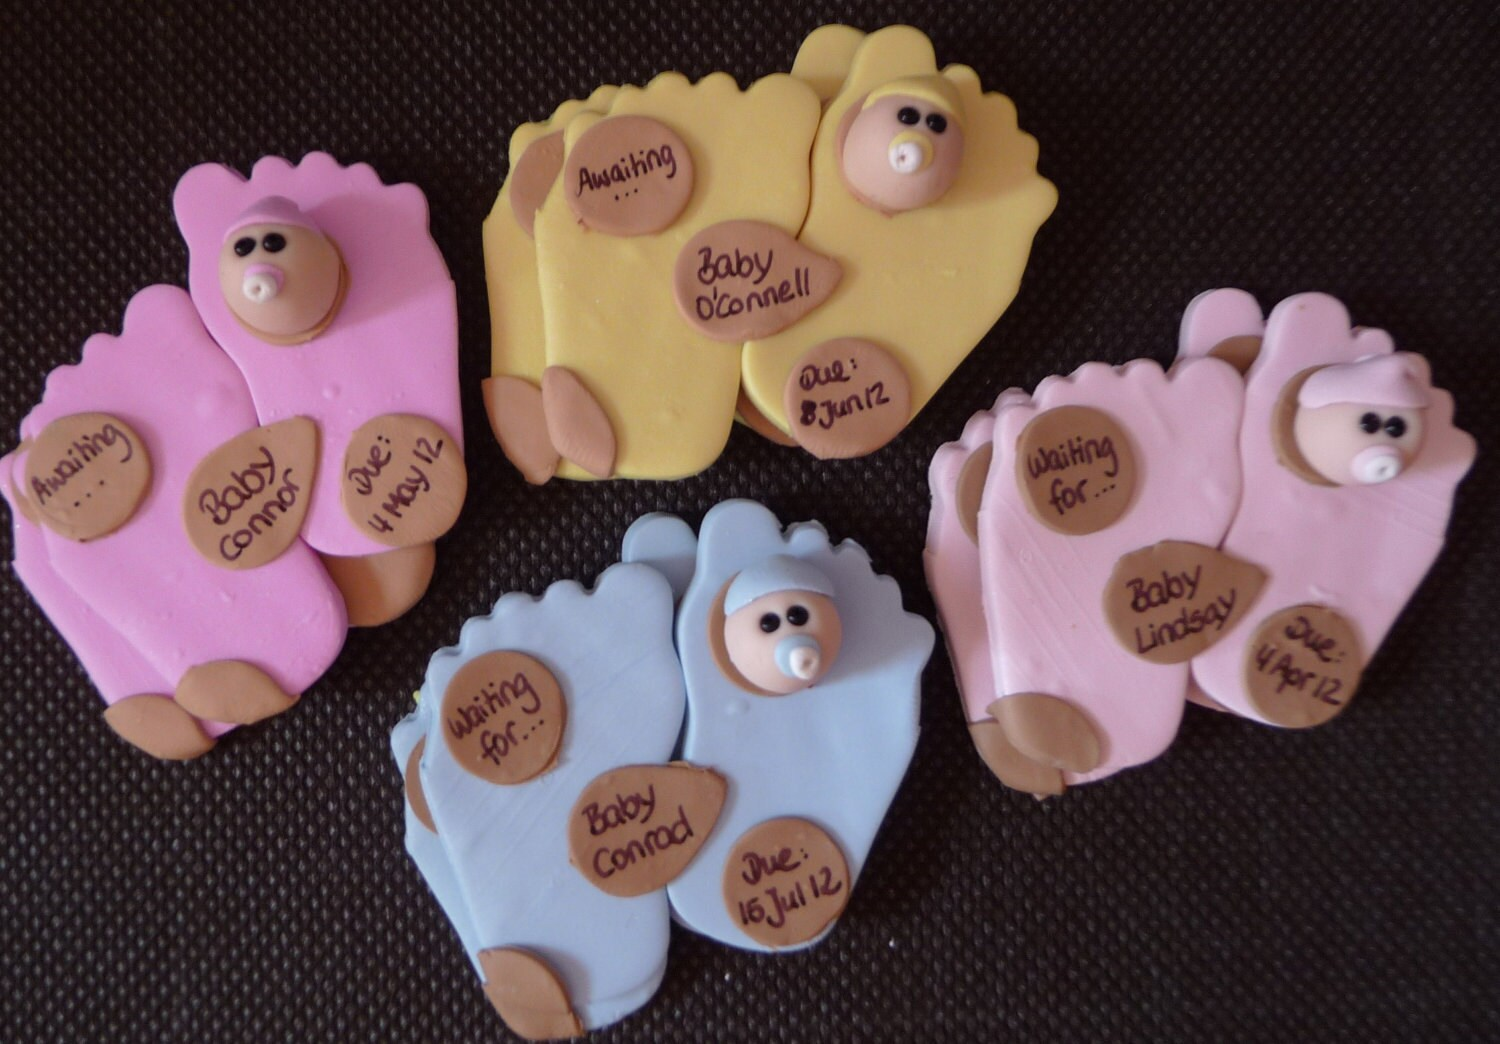 baby shower favors babyfeet magnets set of 10 by nsdomeafavor